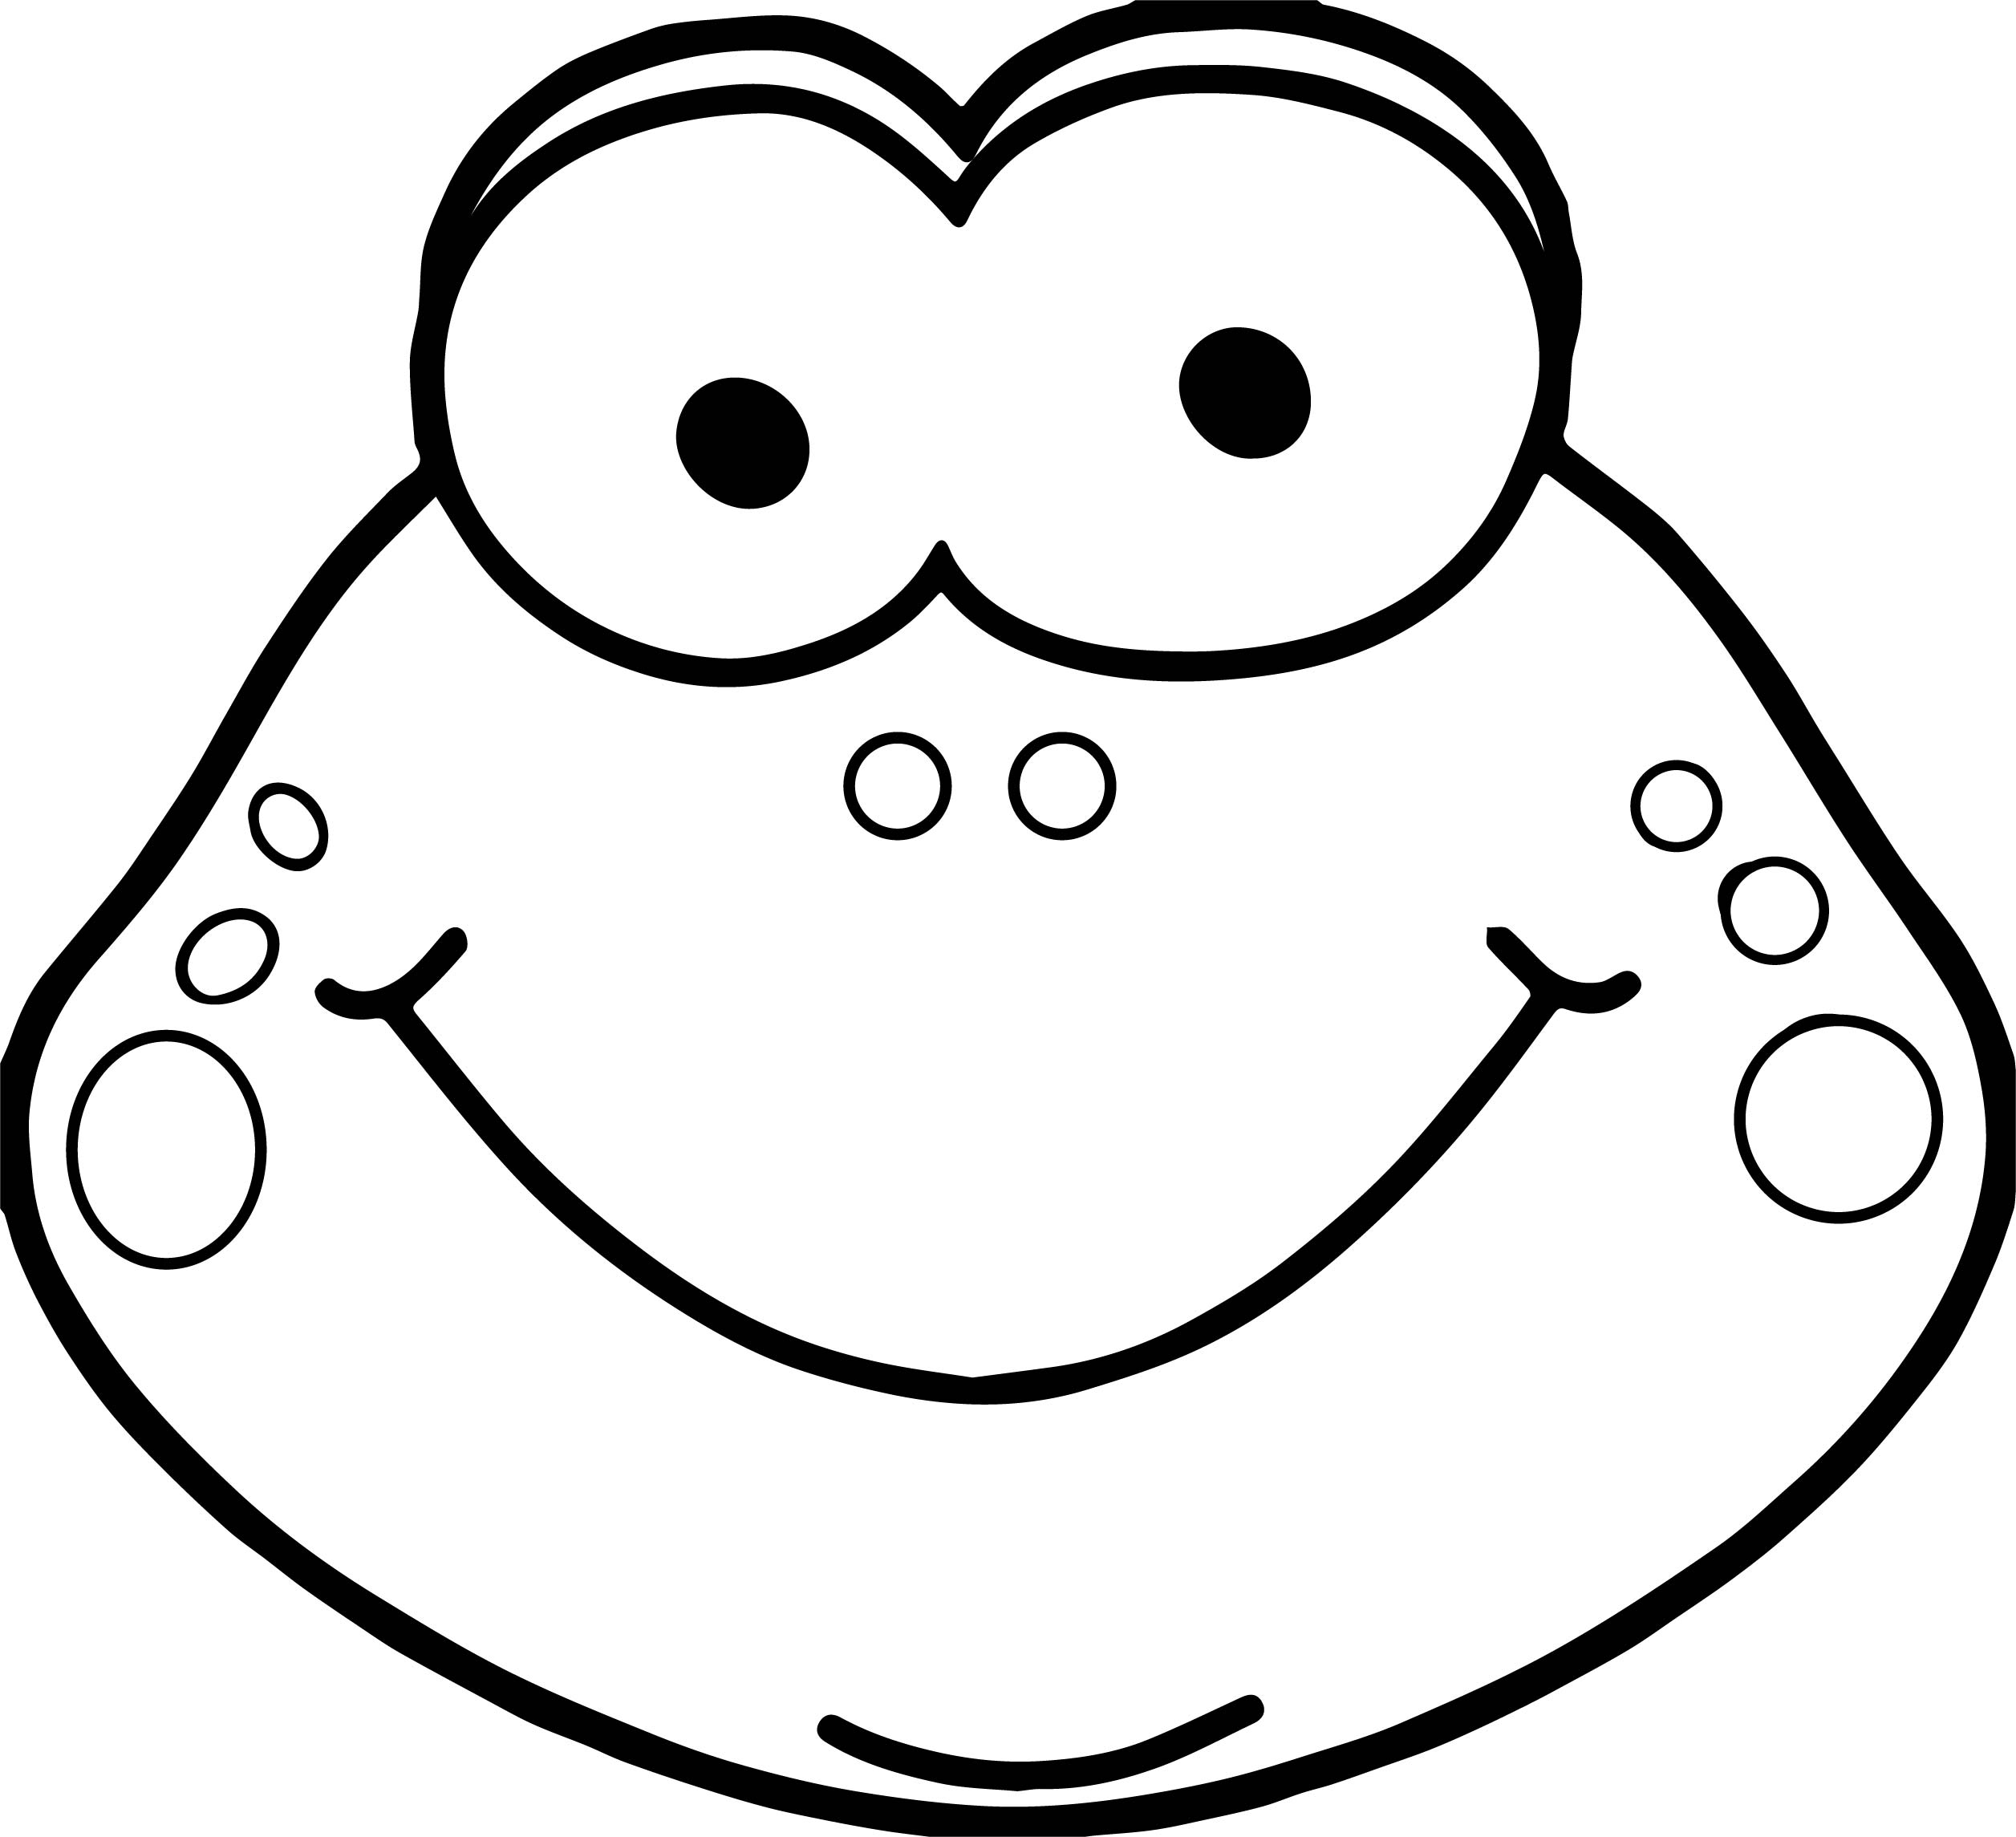 Frog Face Coloring Page Coloring Coloring Pages